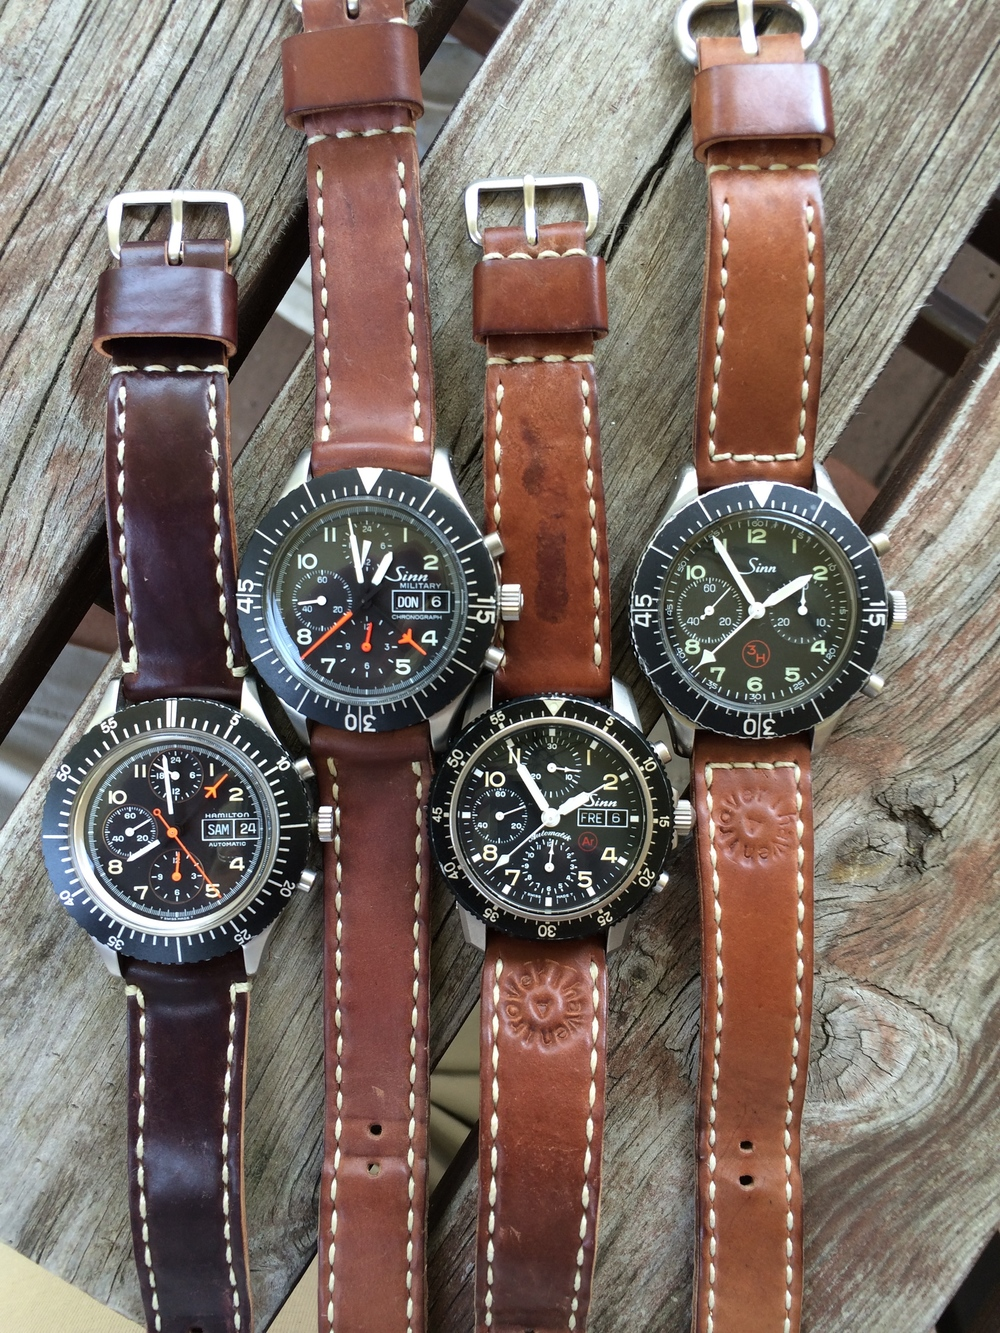 The Hamilton 156/Bund-alike, Sinn 156, Sinn 103 Ti Ar, and Heuer/Sinn 1550 SG.  A great set.